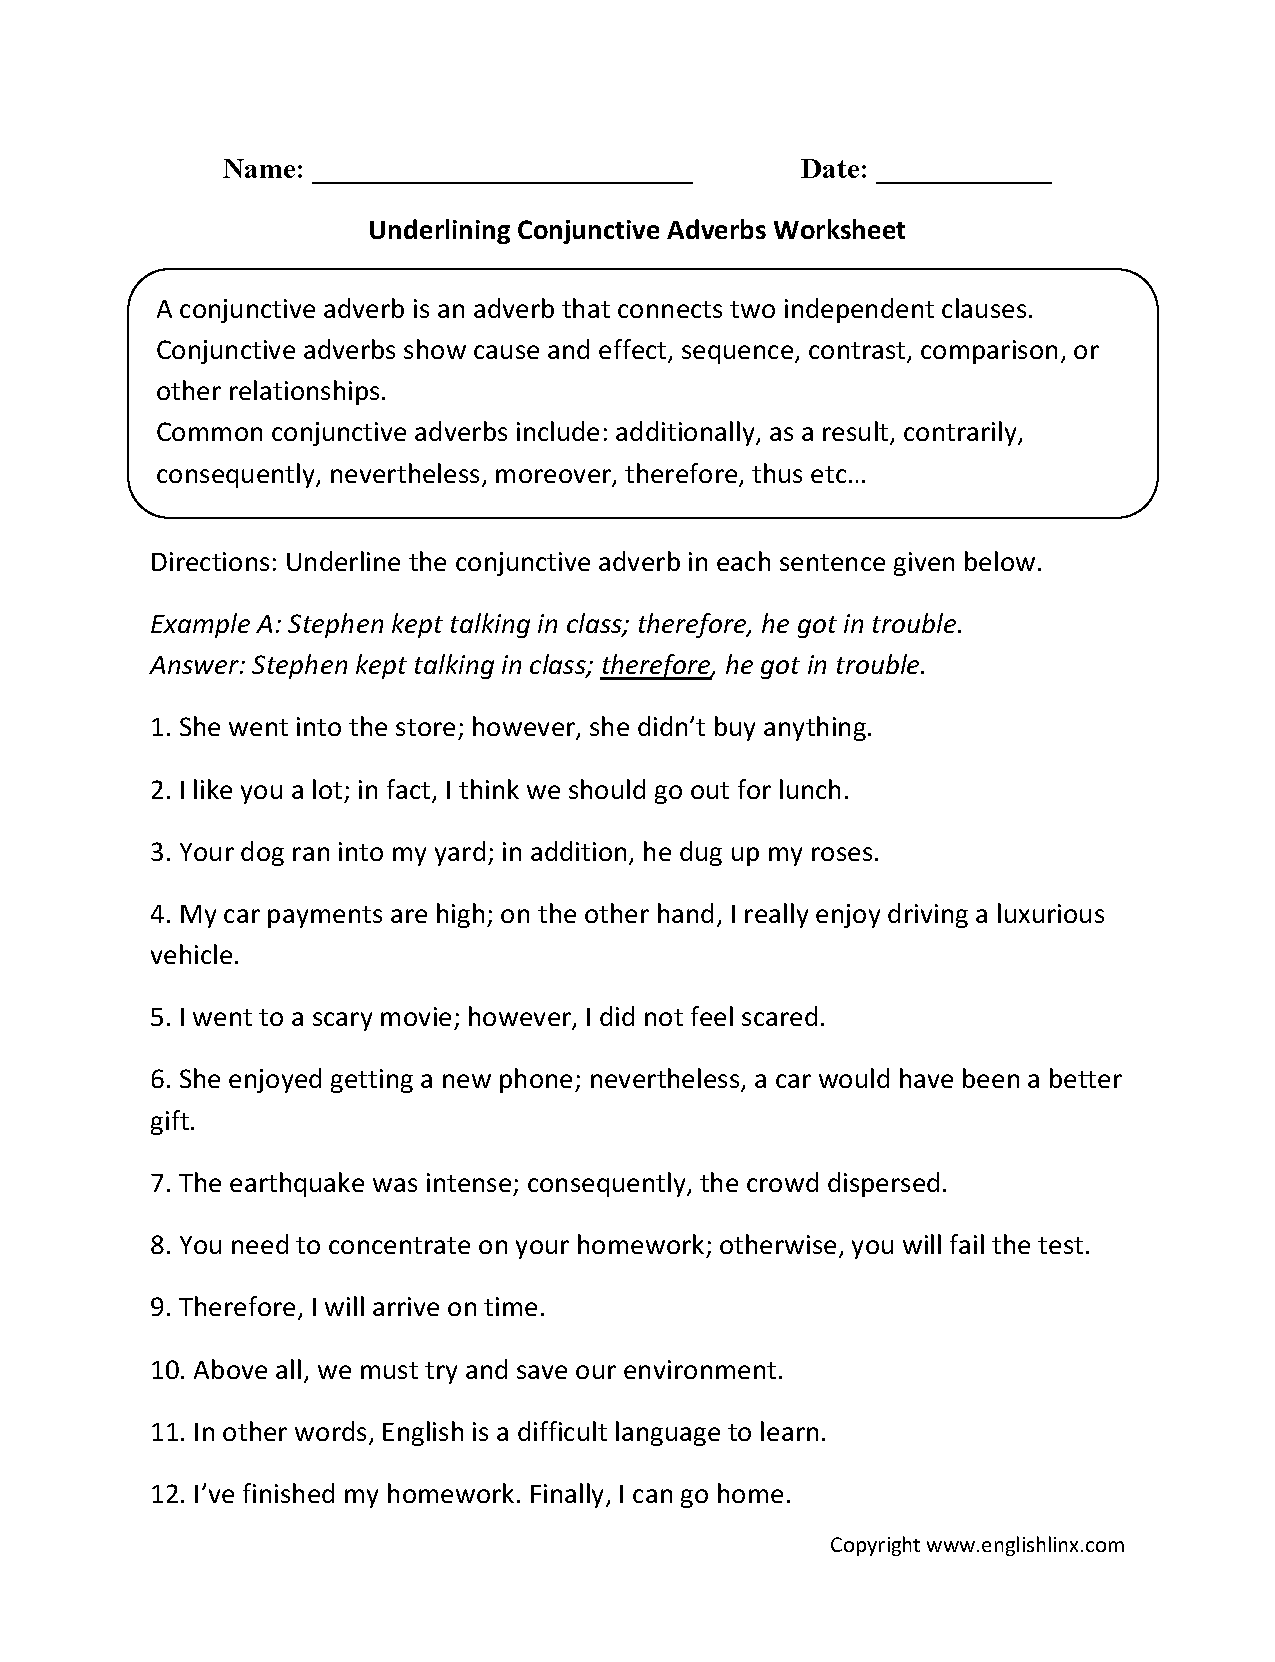 Proatmealus  Pleasing Englishlinxcom  Conjunctions Worksheets With Hot Worksheet With Amusing Free Holiday Math Worksheets Also Spelling Worksheets For Middle School In Addition Text Features Matching Worksheet And Introduction To Fractions Worksheet As Well As St Reading Comprehension Worksheets Additionally Space Worksheets For Kids From Englishlinxcom With Proatmealus  Hot Englishlinxcom  Conjunctions Worksheets With Amusing Worksheet And Pleasing Free Holiday Math Worksheets Also Spelling Worksheets For Middle School In Addition Text Features Matching Worksheet From Englishlinxcom